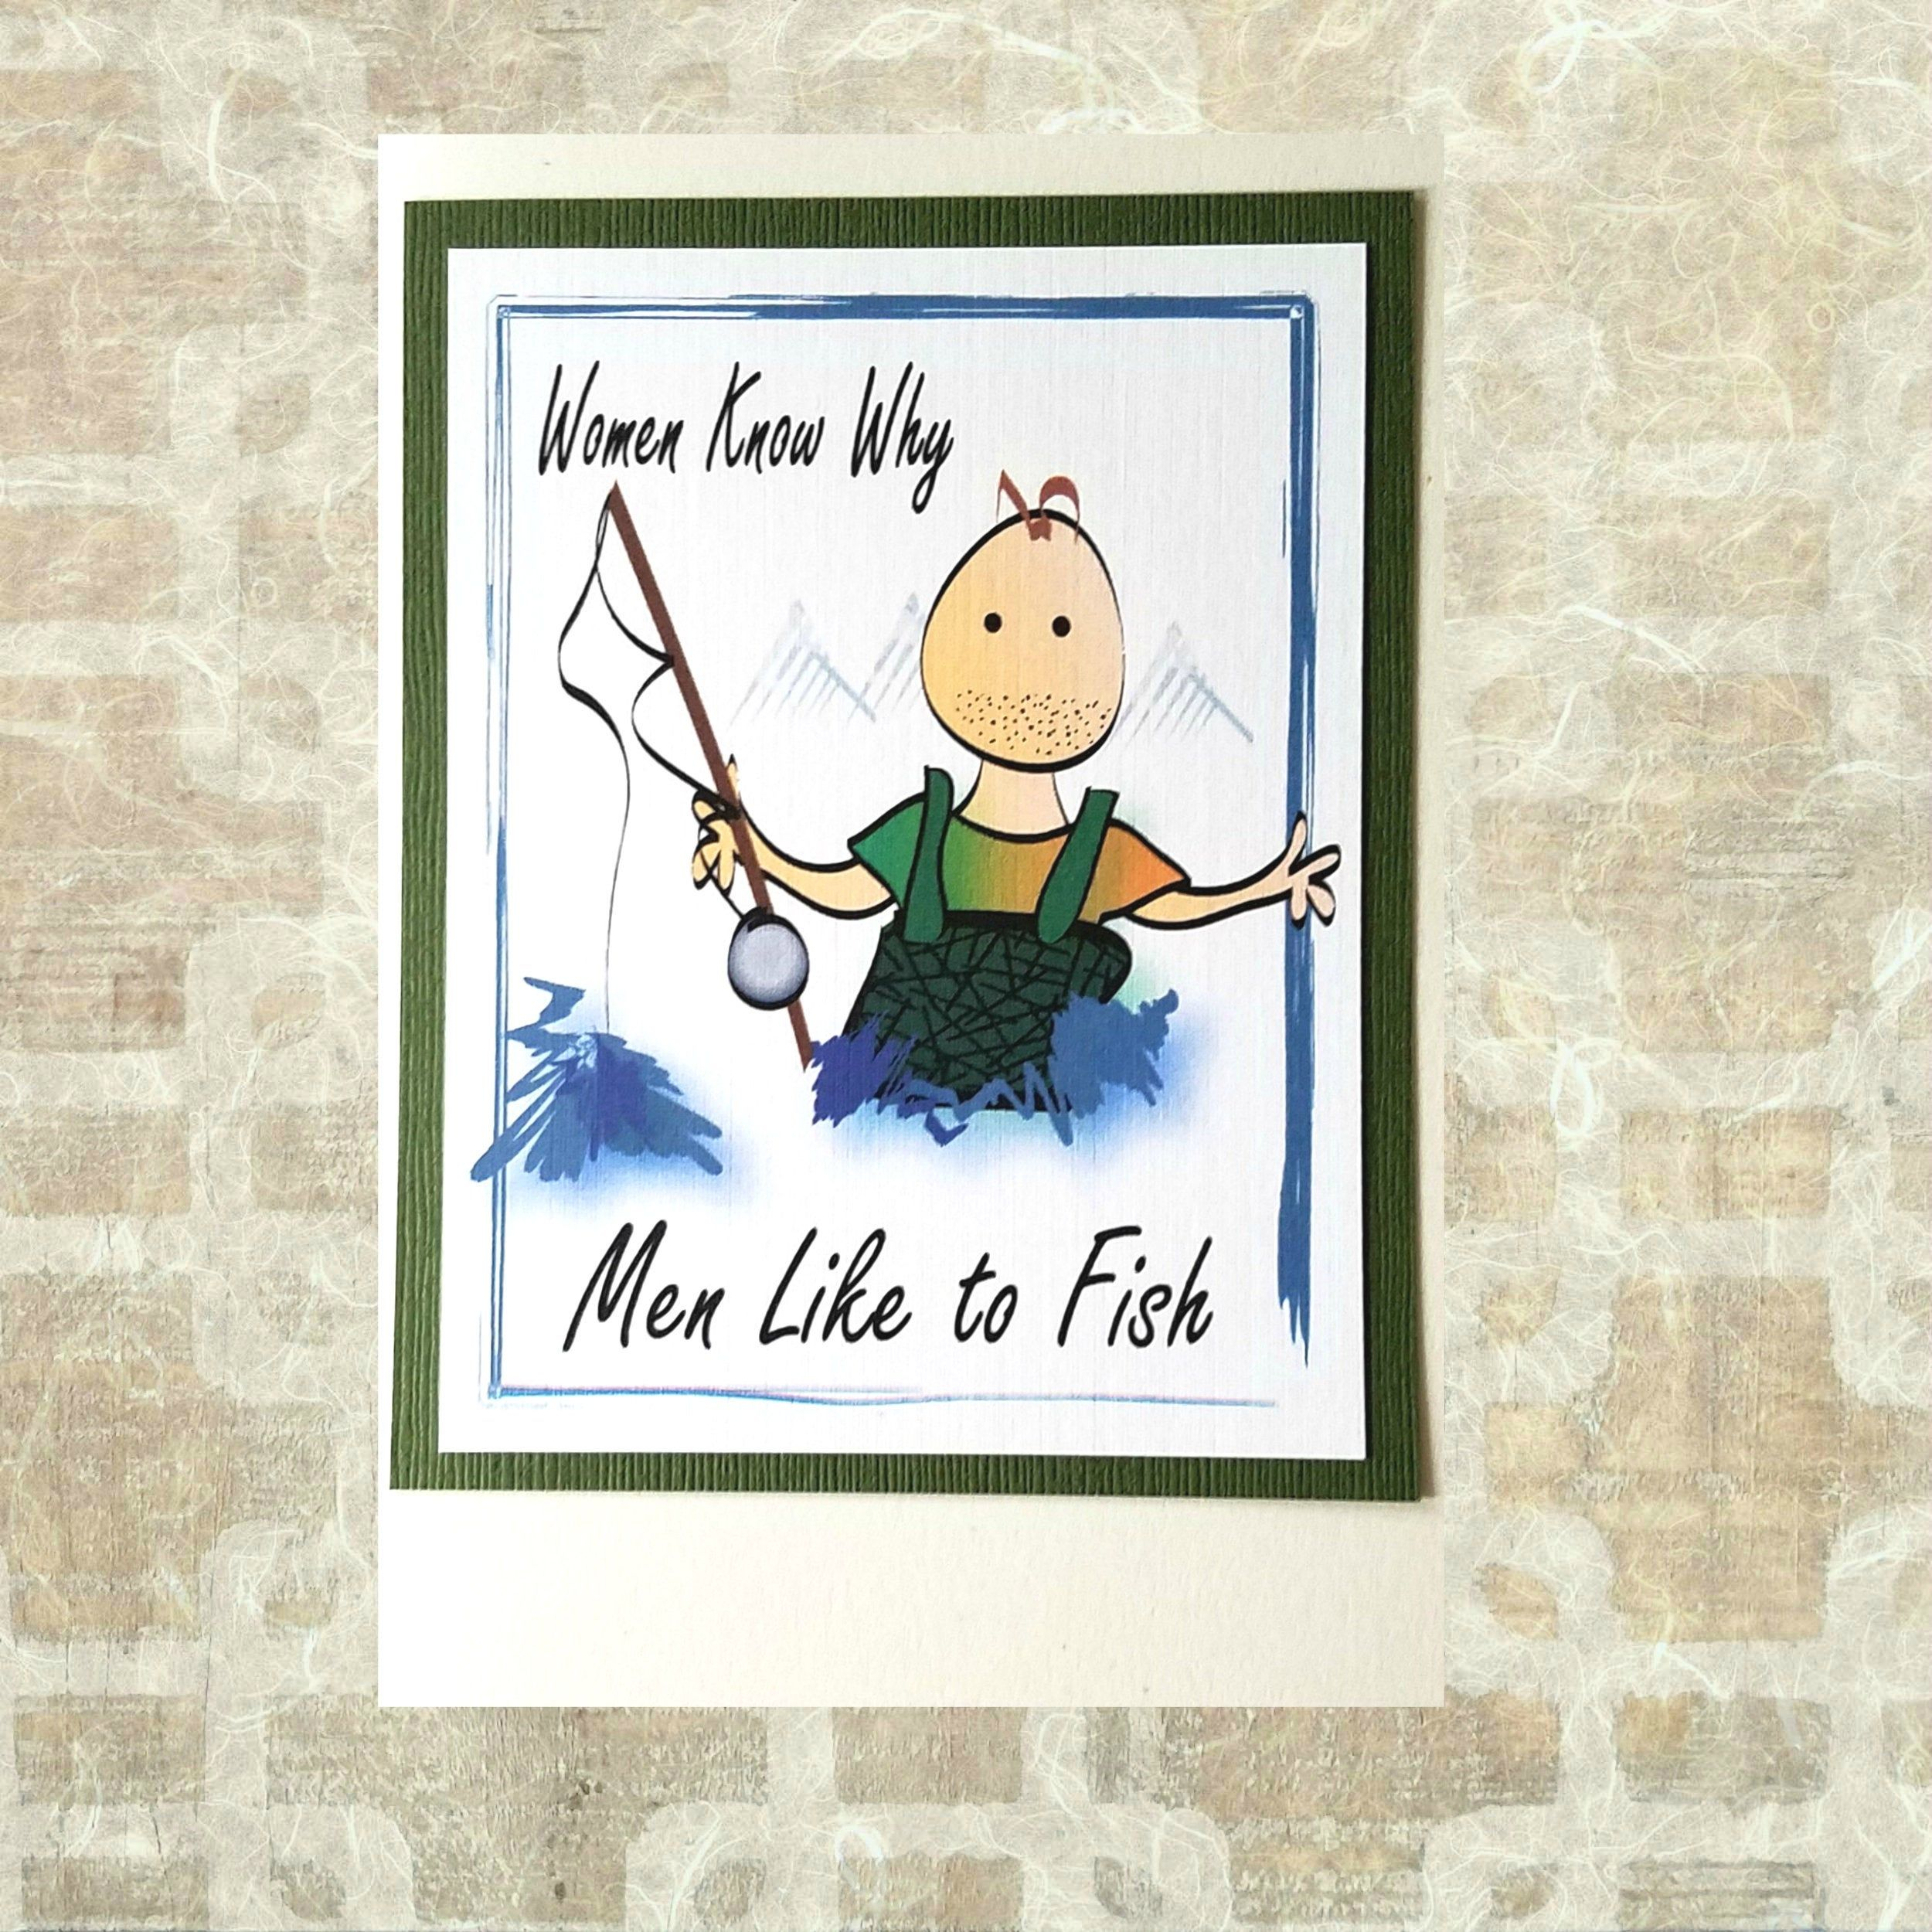 Funny Fishing Birthday Card For Him Snarky Boyfriend Happy Etsy Birthday Cards For Him Fishing Birthday Cards Funny Birthday Cards